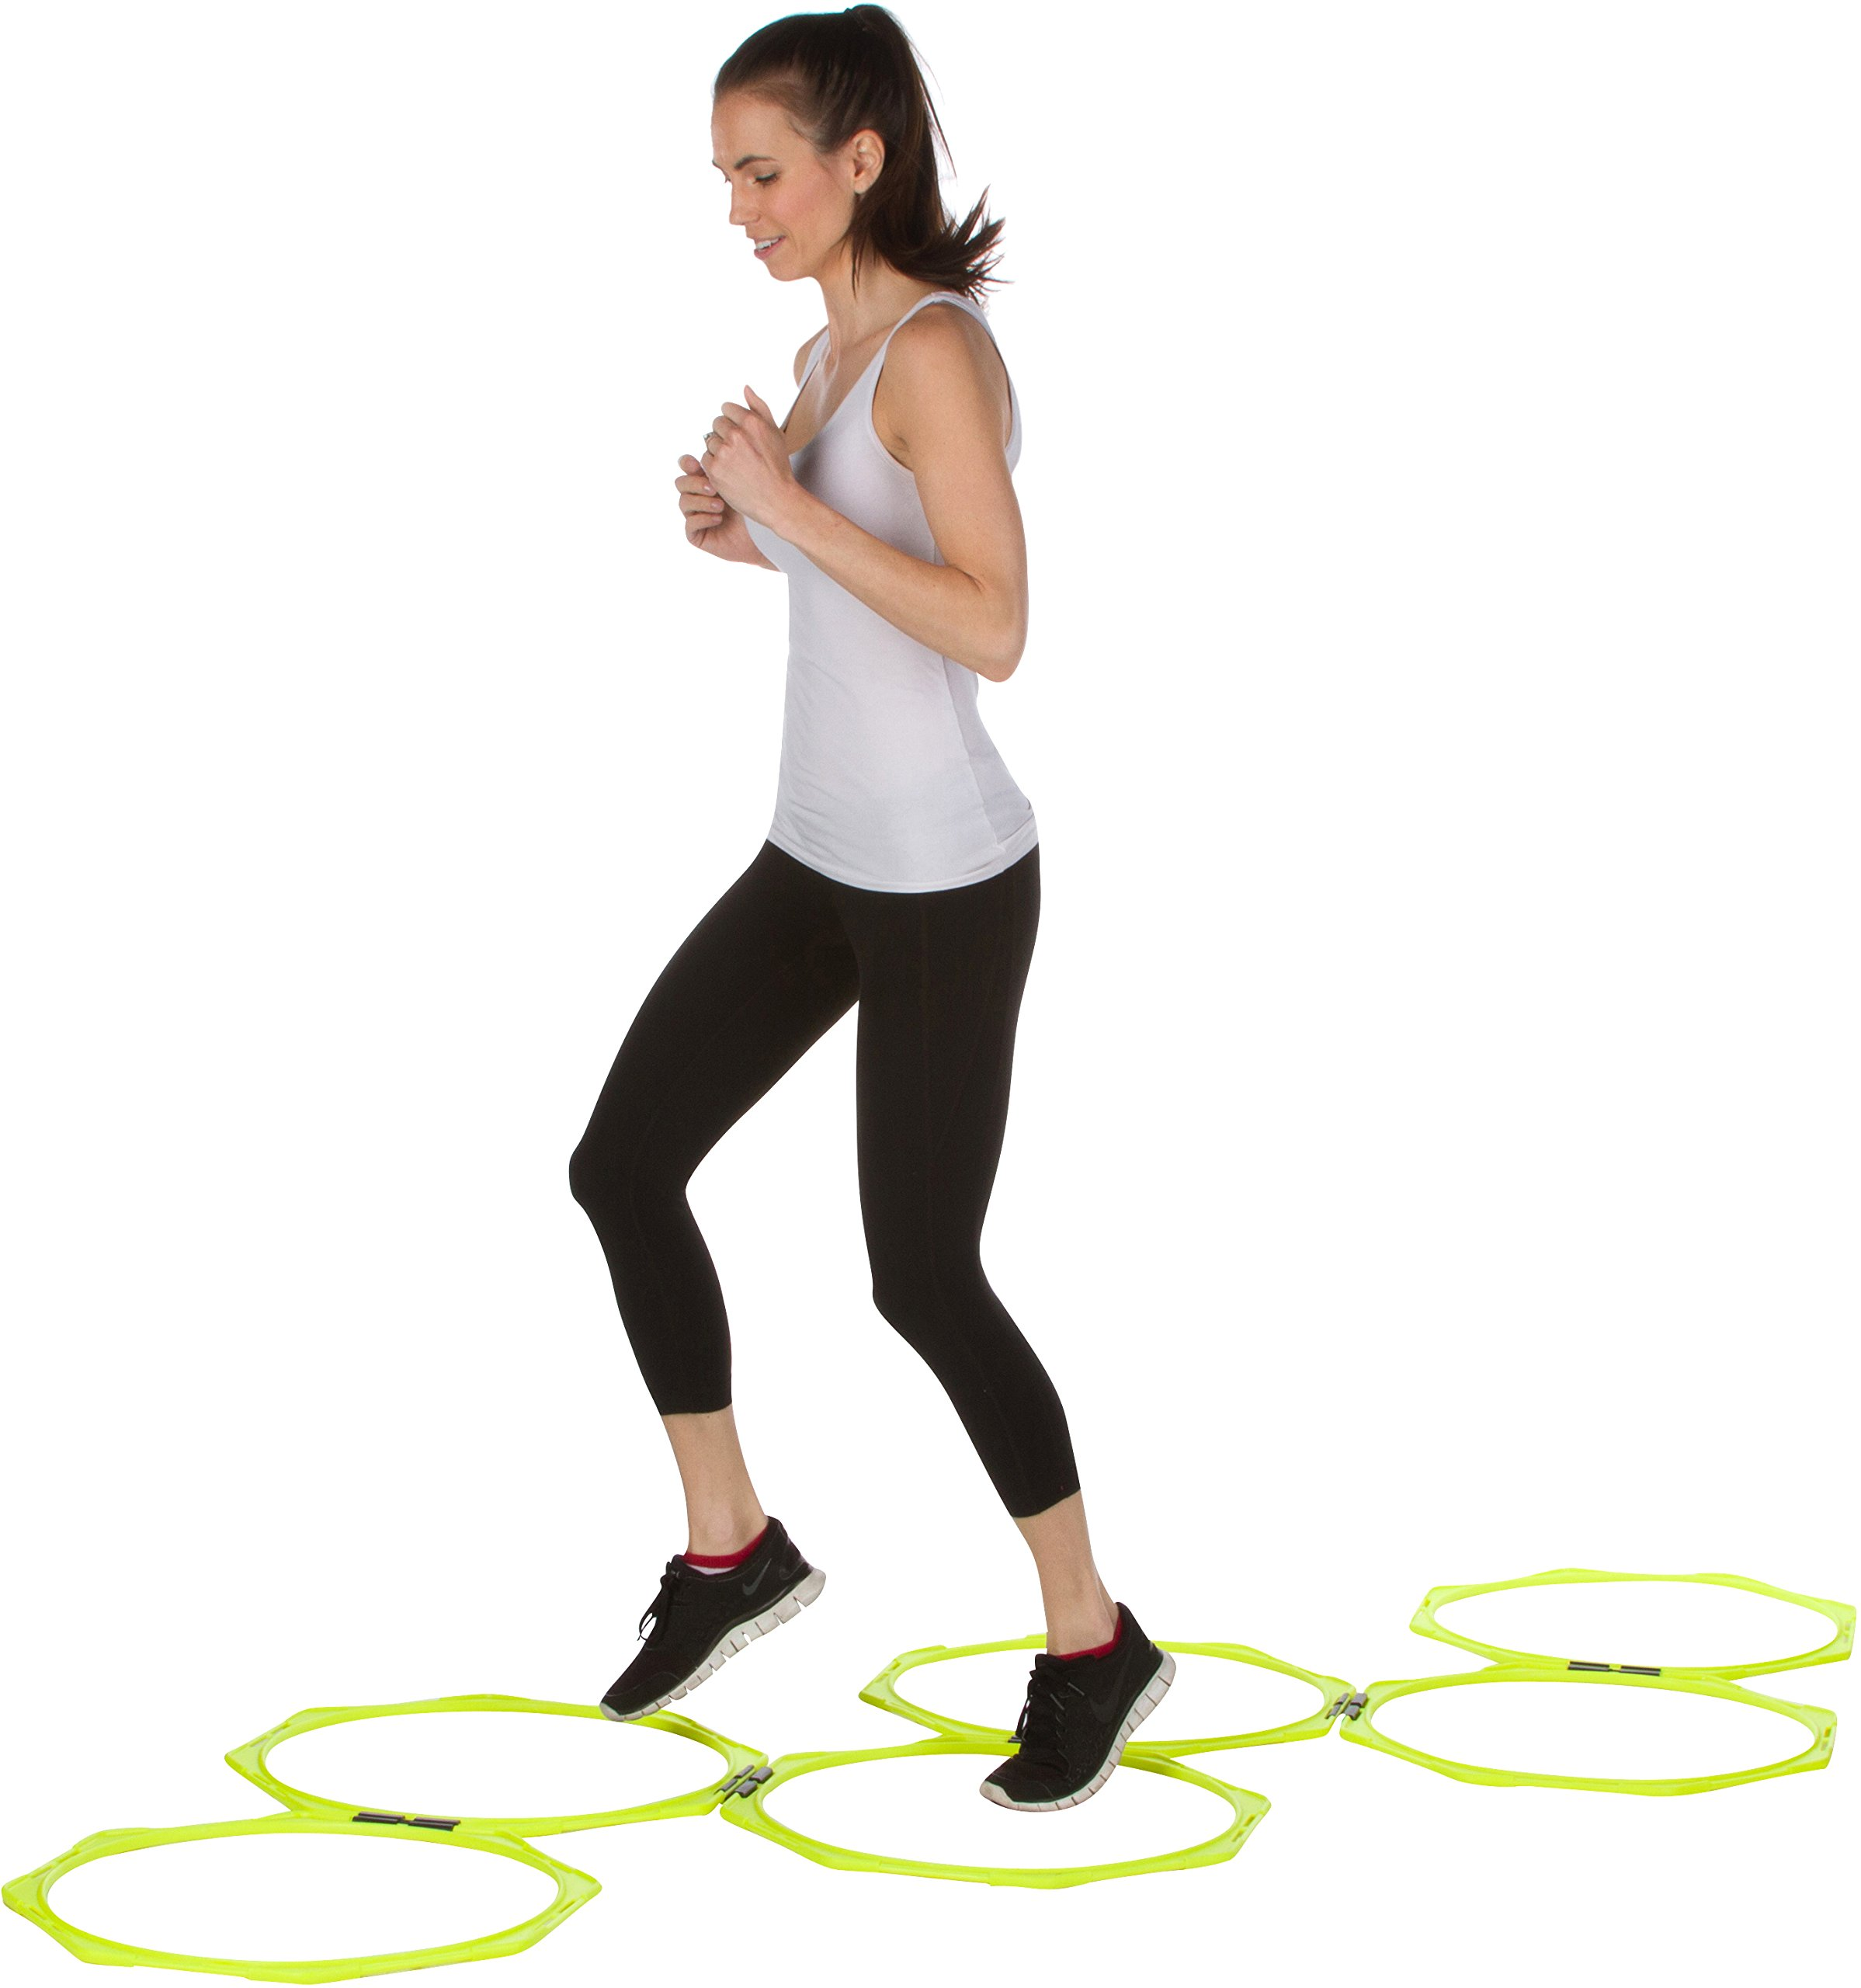 Trademark Innovations 20'' Hexagonal Speed & Agility Training Rings - Set of 6 With Carry Bag By (Light Green)